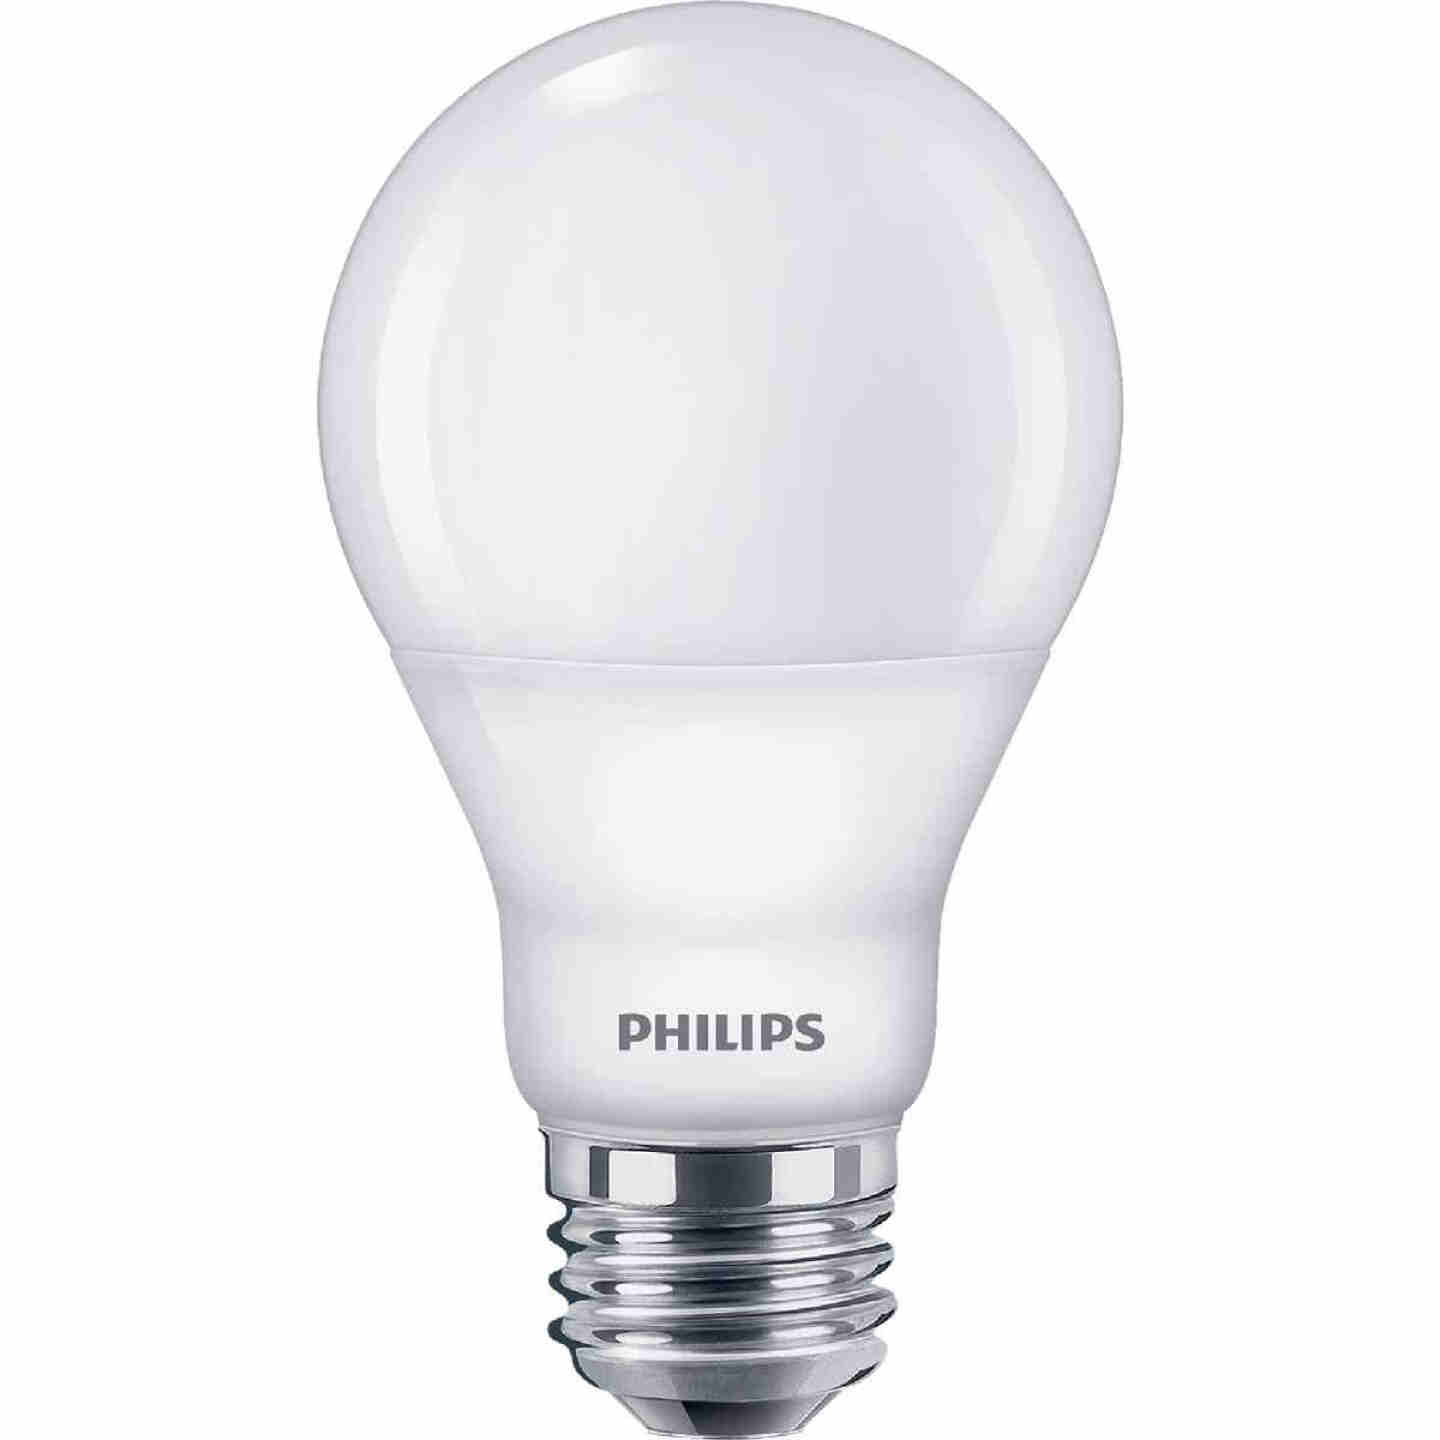 Philips Warm Glow 60W Equivalent Soft White A19 Medium Dimmable LED Light Bulb (4-Pack) Image 3